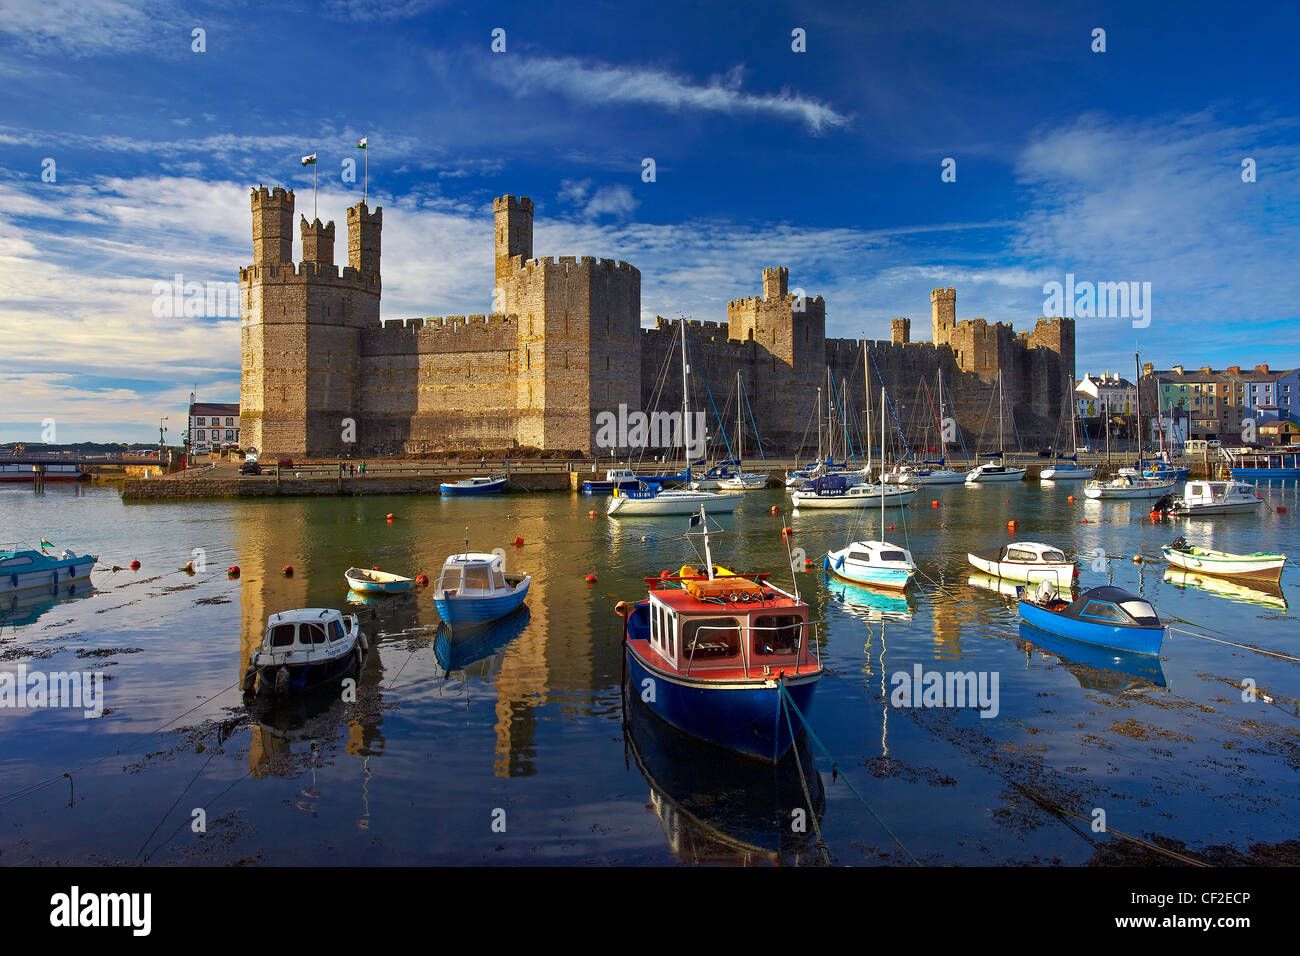 Boats moored by Caernarfon Castle at the mouth of the of the Seiont river. Stock Photo